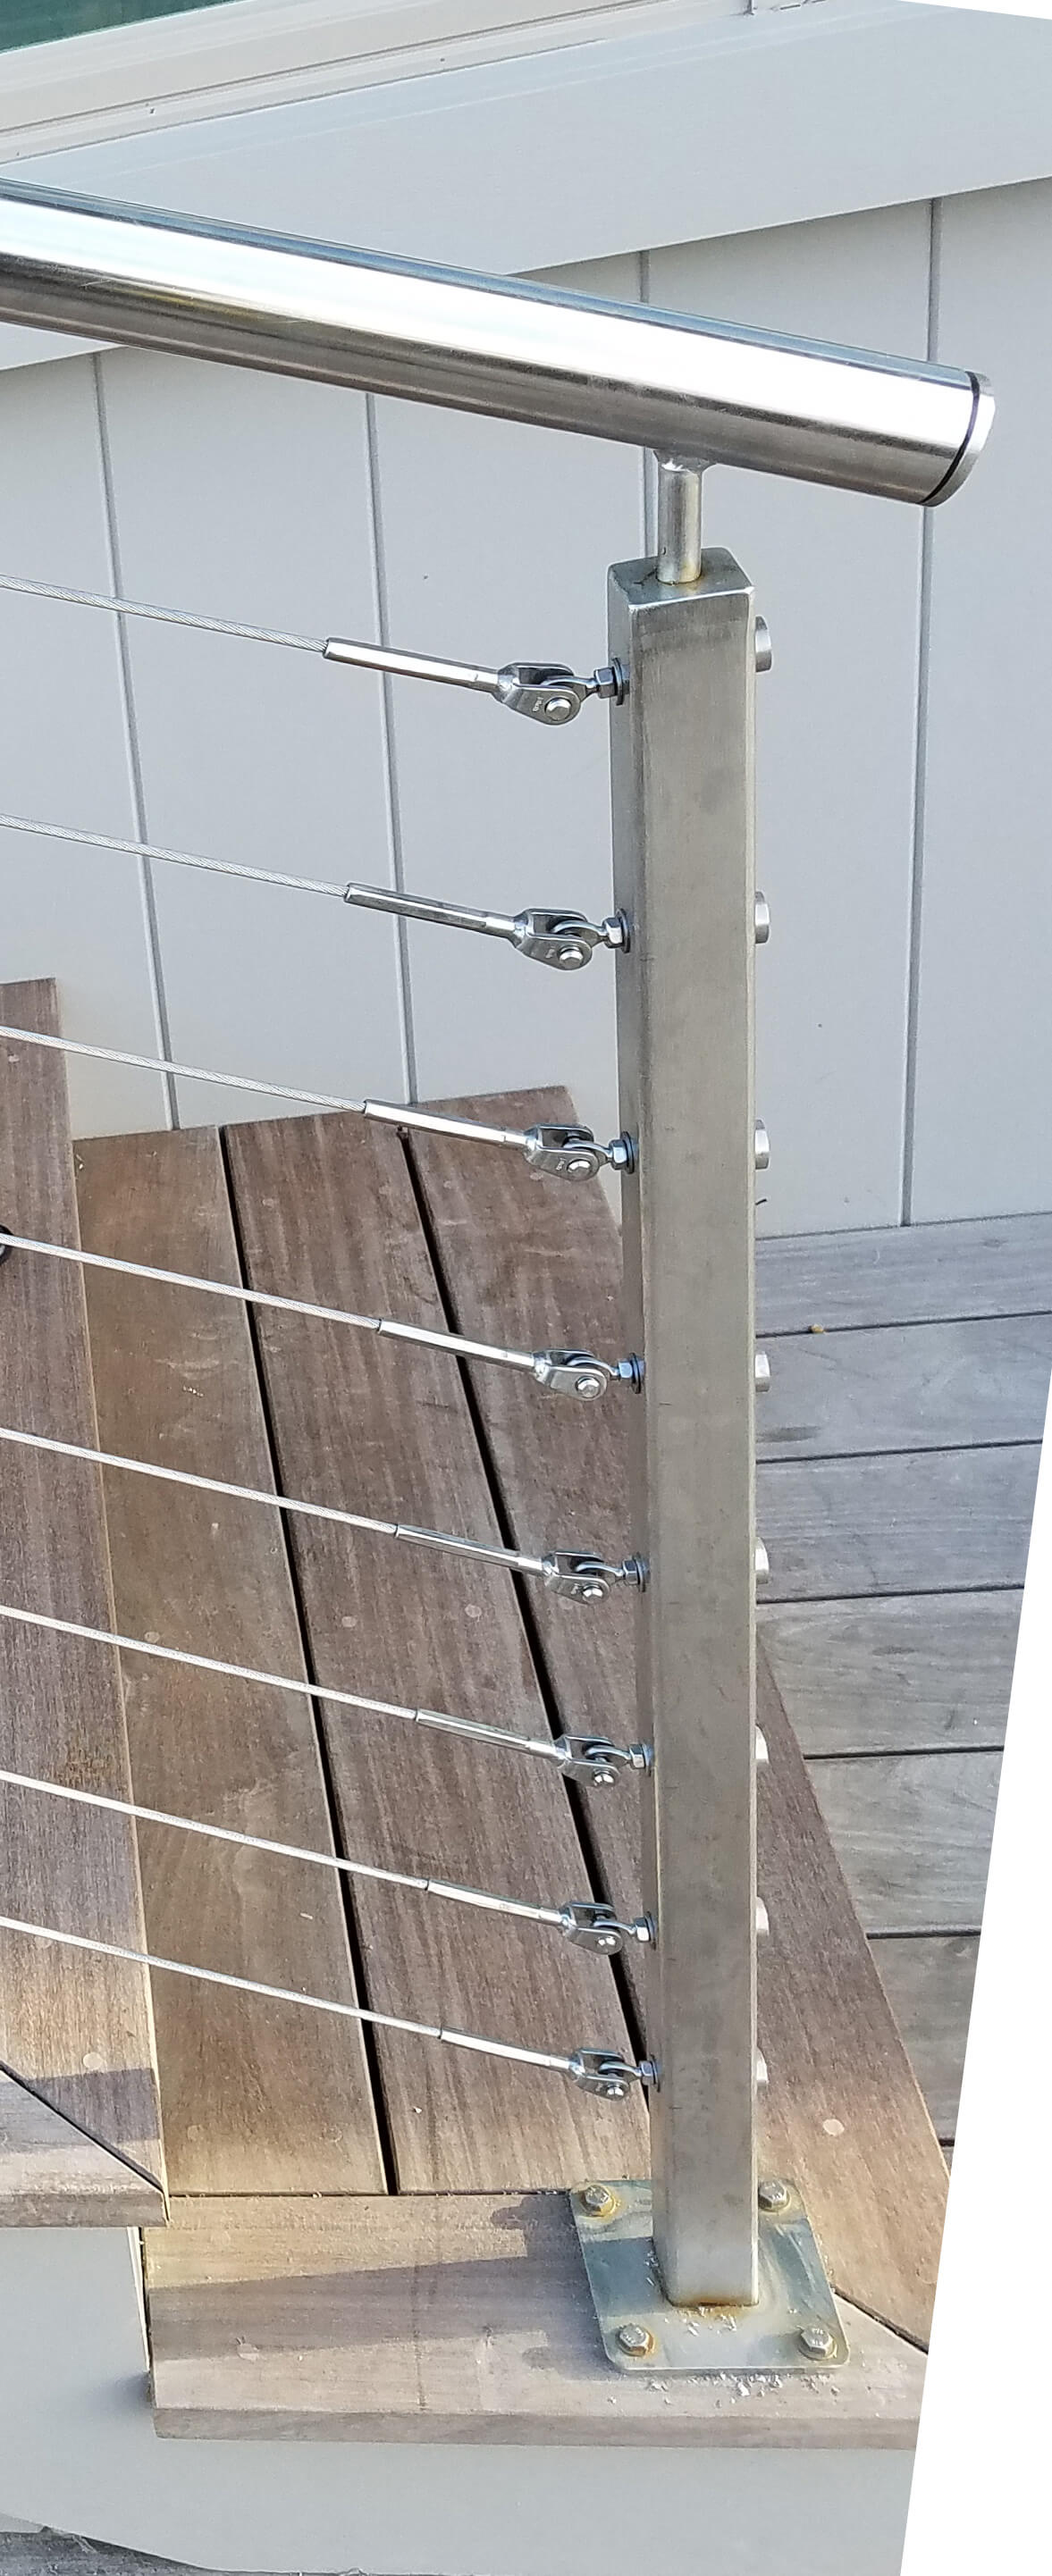 Stainless Steel Cable Rail Detail